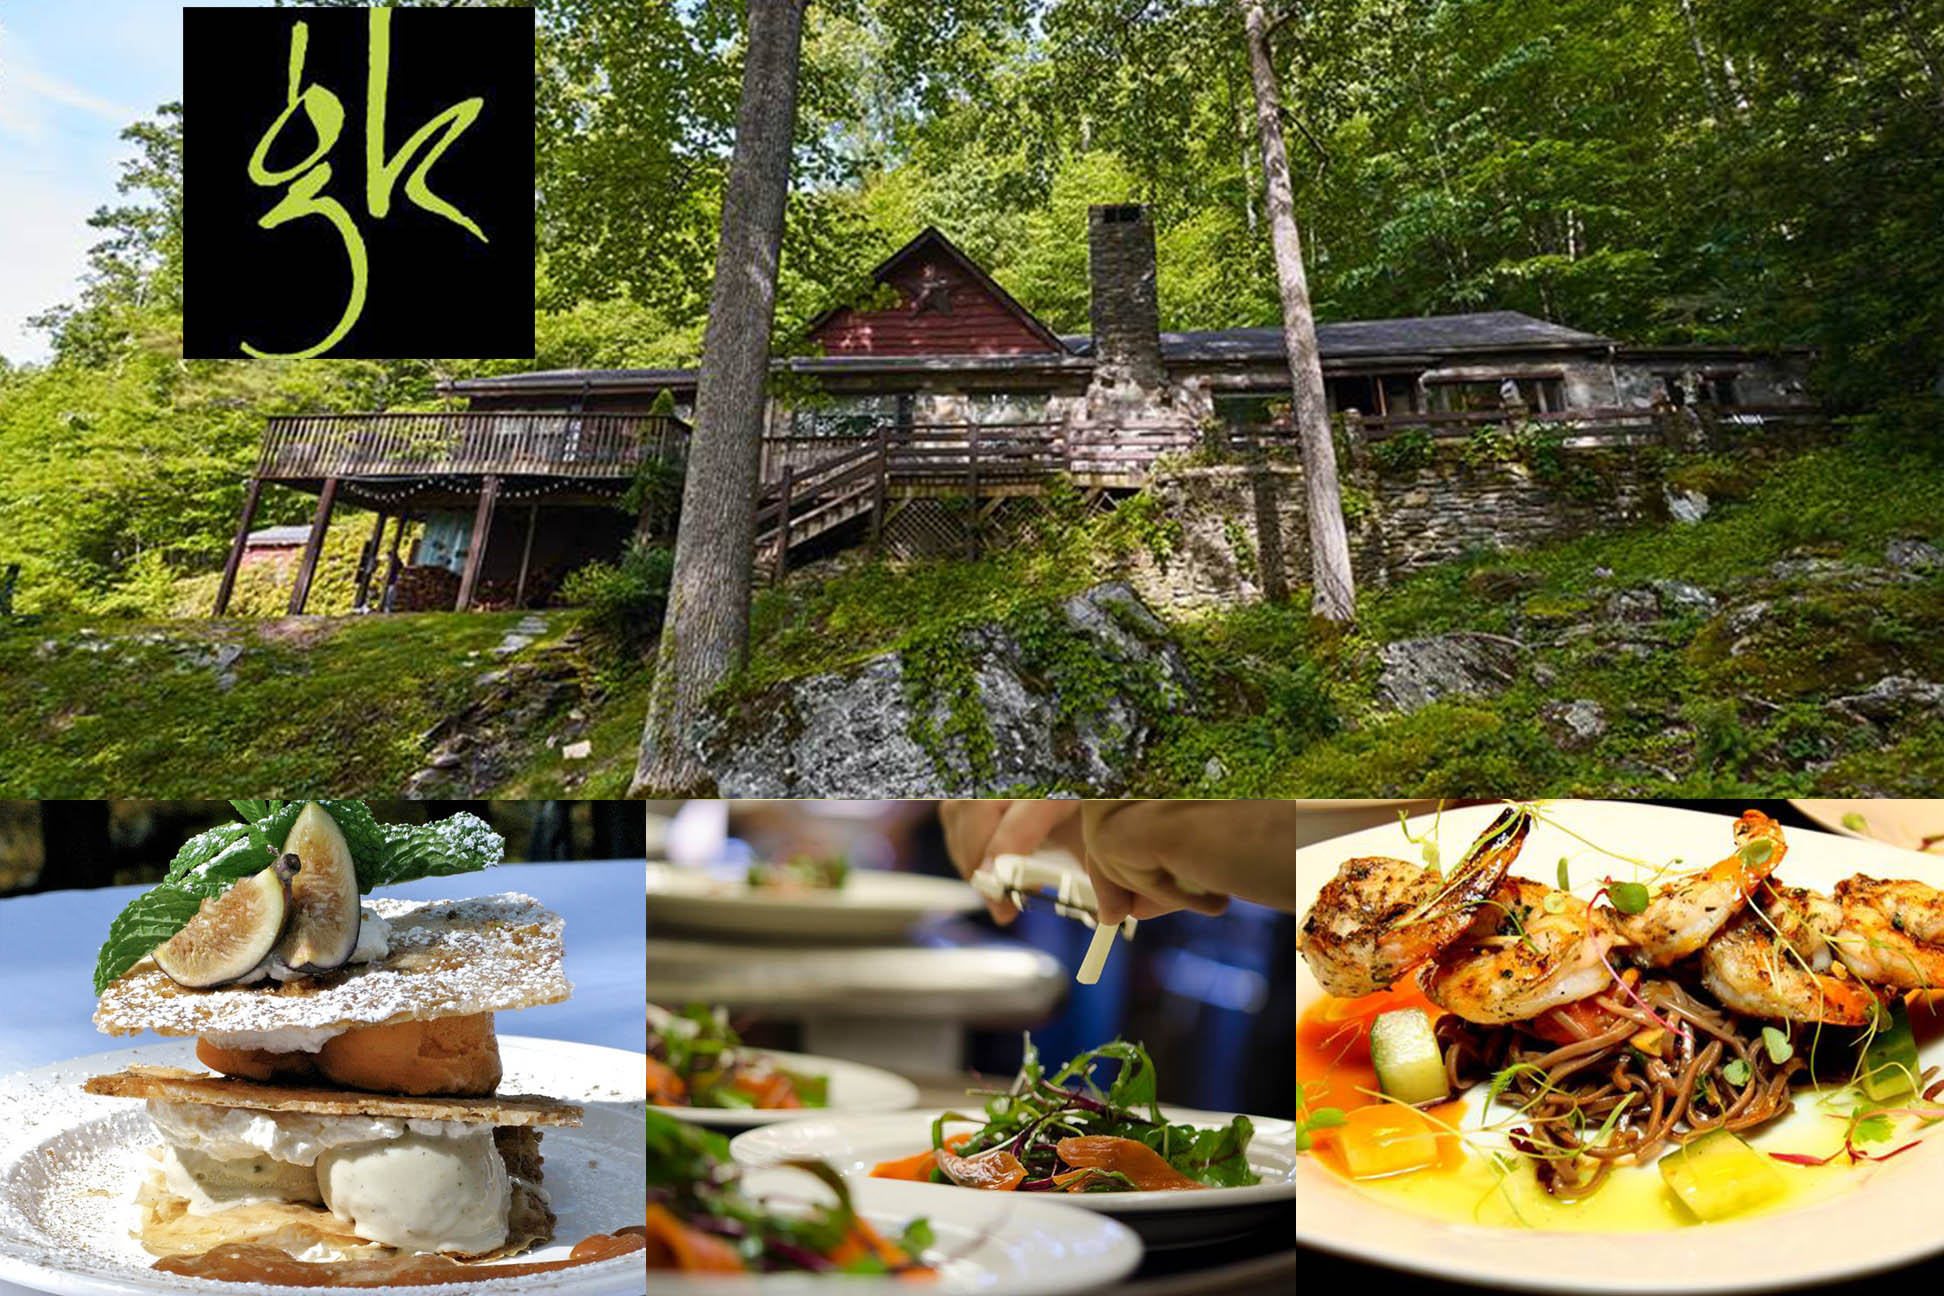 the gamekeeper logo on top left with exterior shot of the building and plattes of delicious food